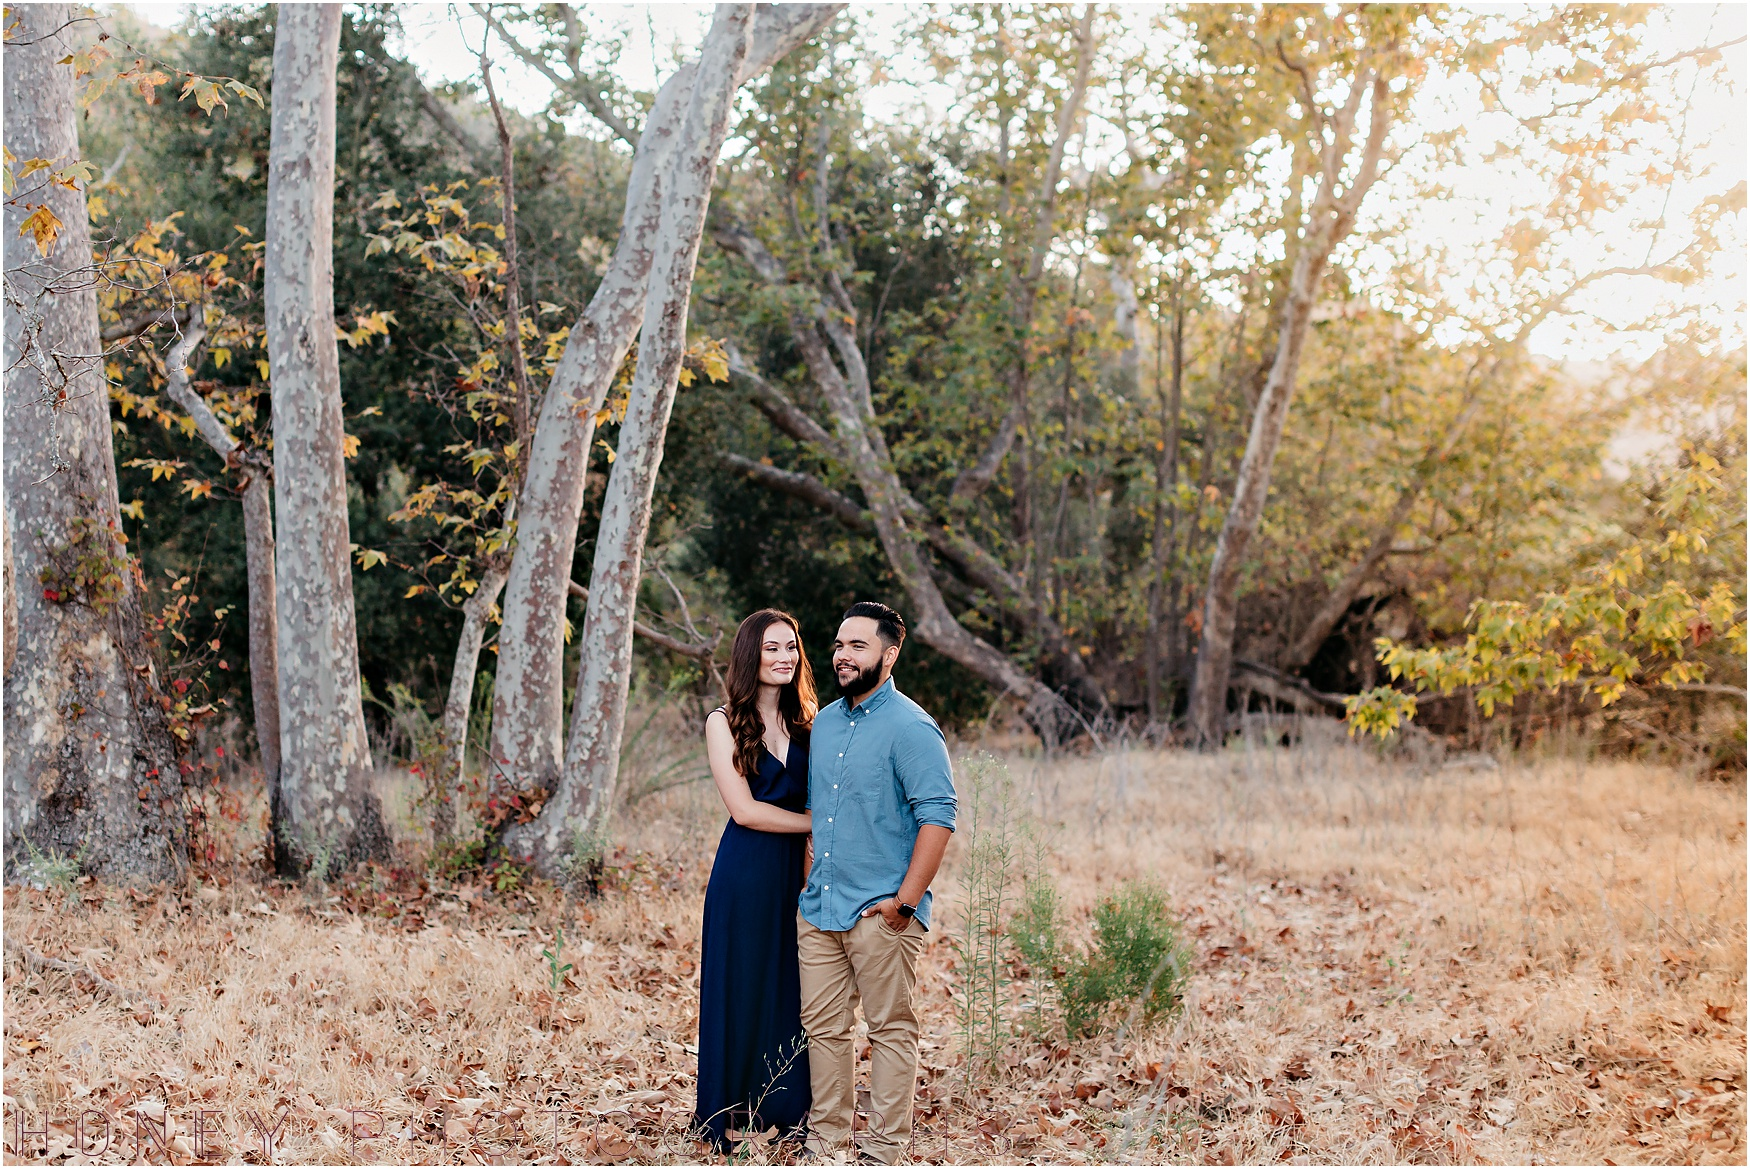 marian_bear_sunset_woods_san_diego_engagement016.jpg